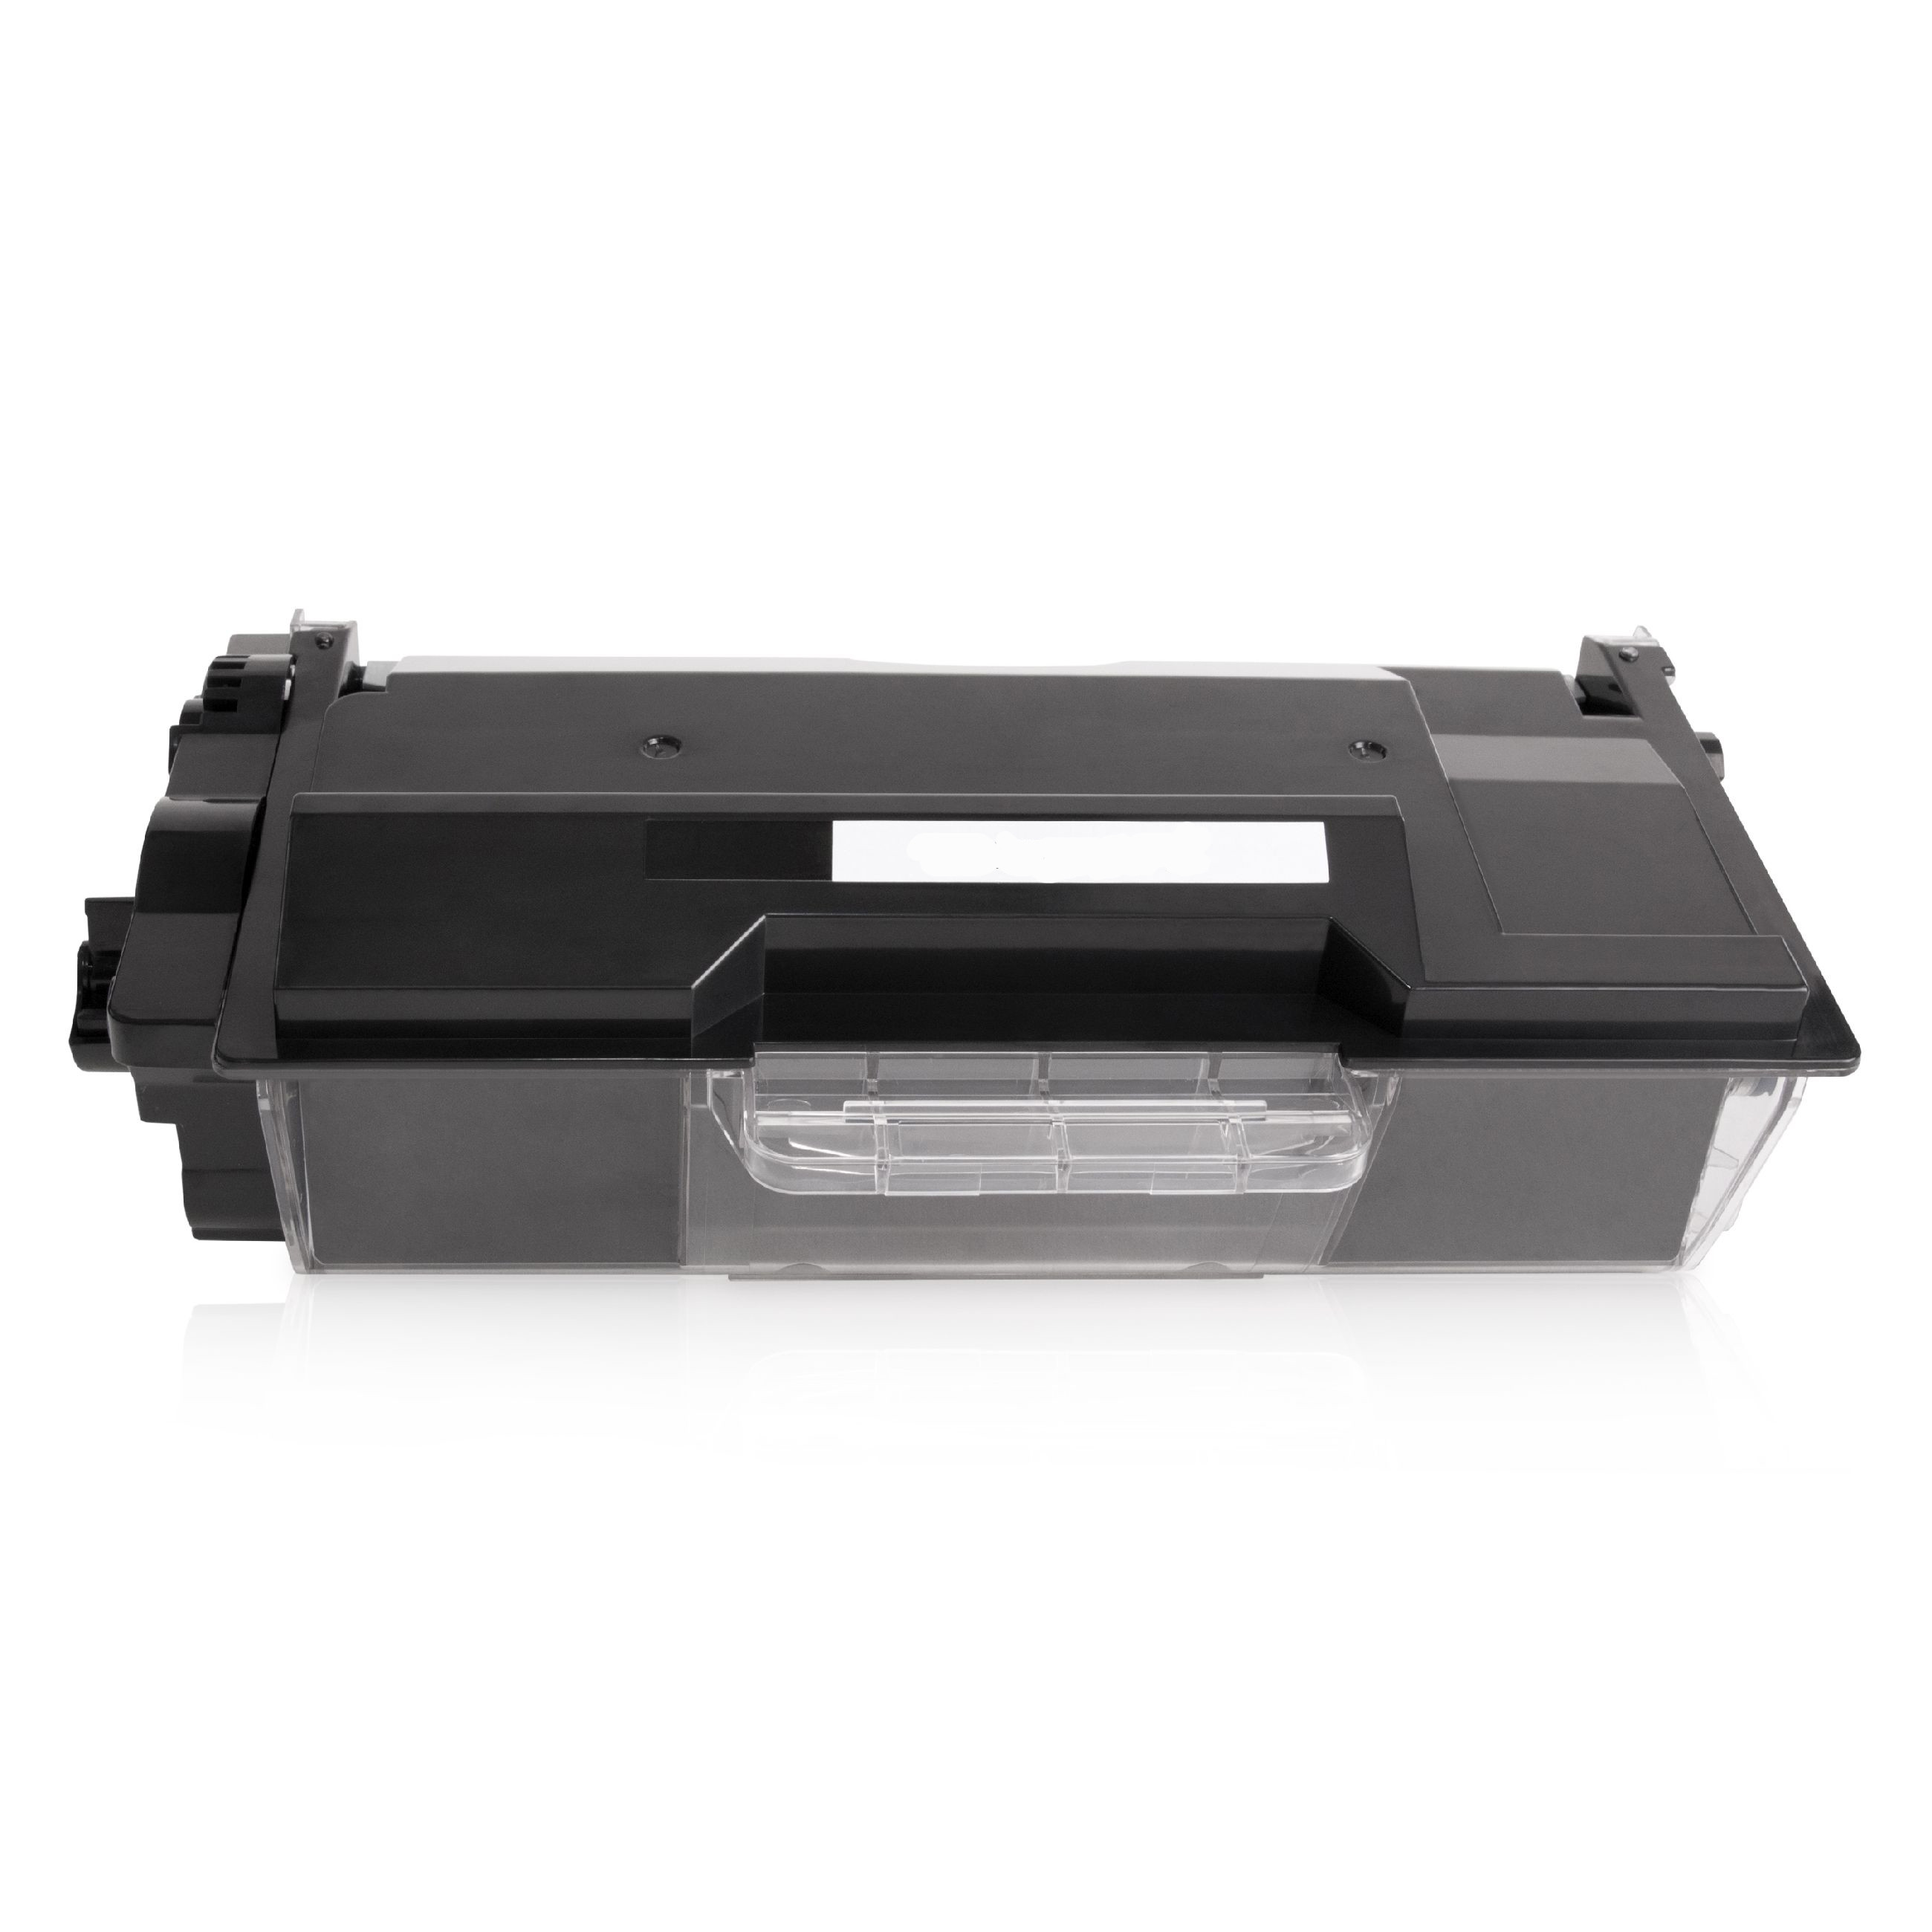 Bild fuer den Artikel TC-BRO3480: Alternativ-Toner BROTHER TN-3480 in schwarz